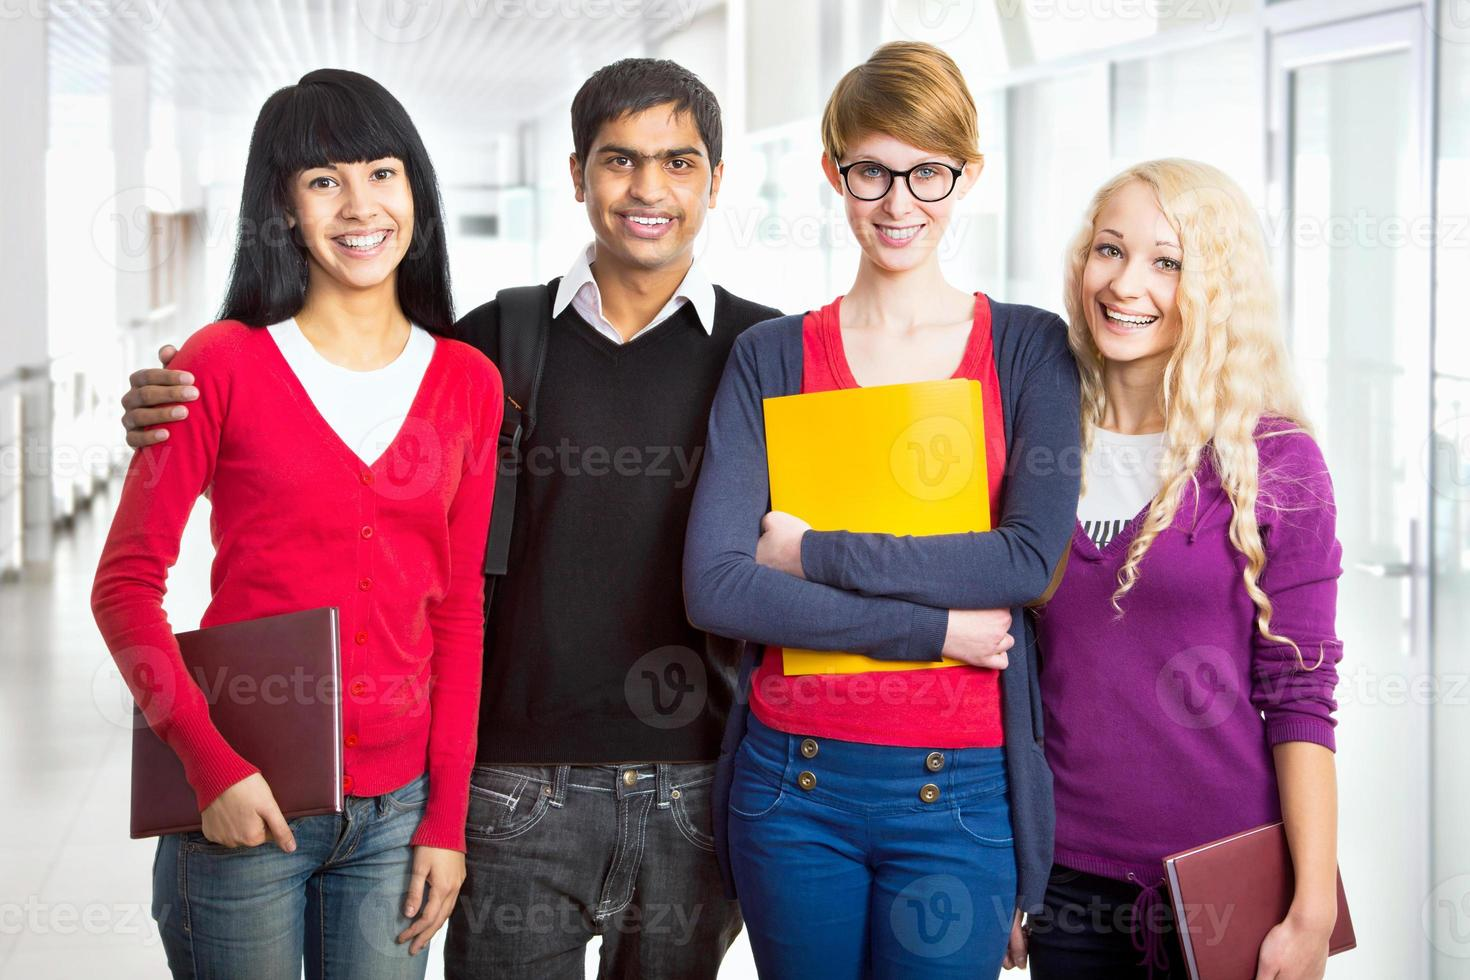 Group of happy students photo